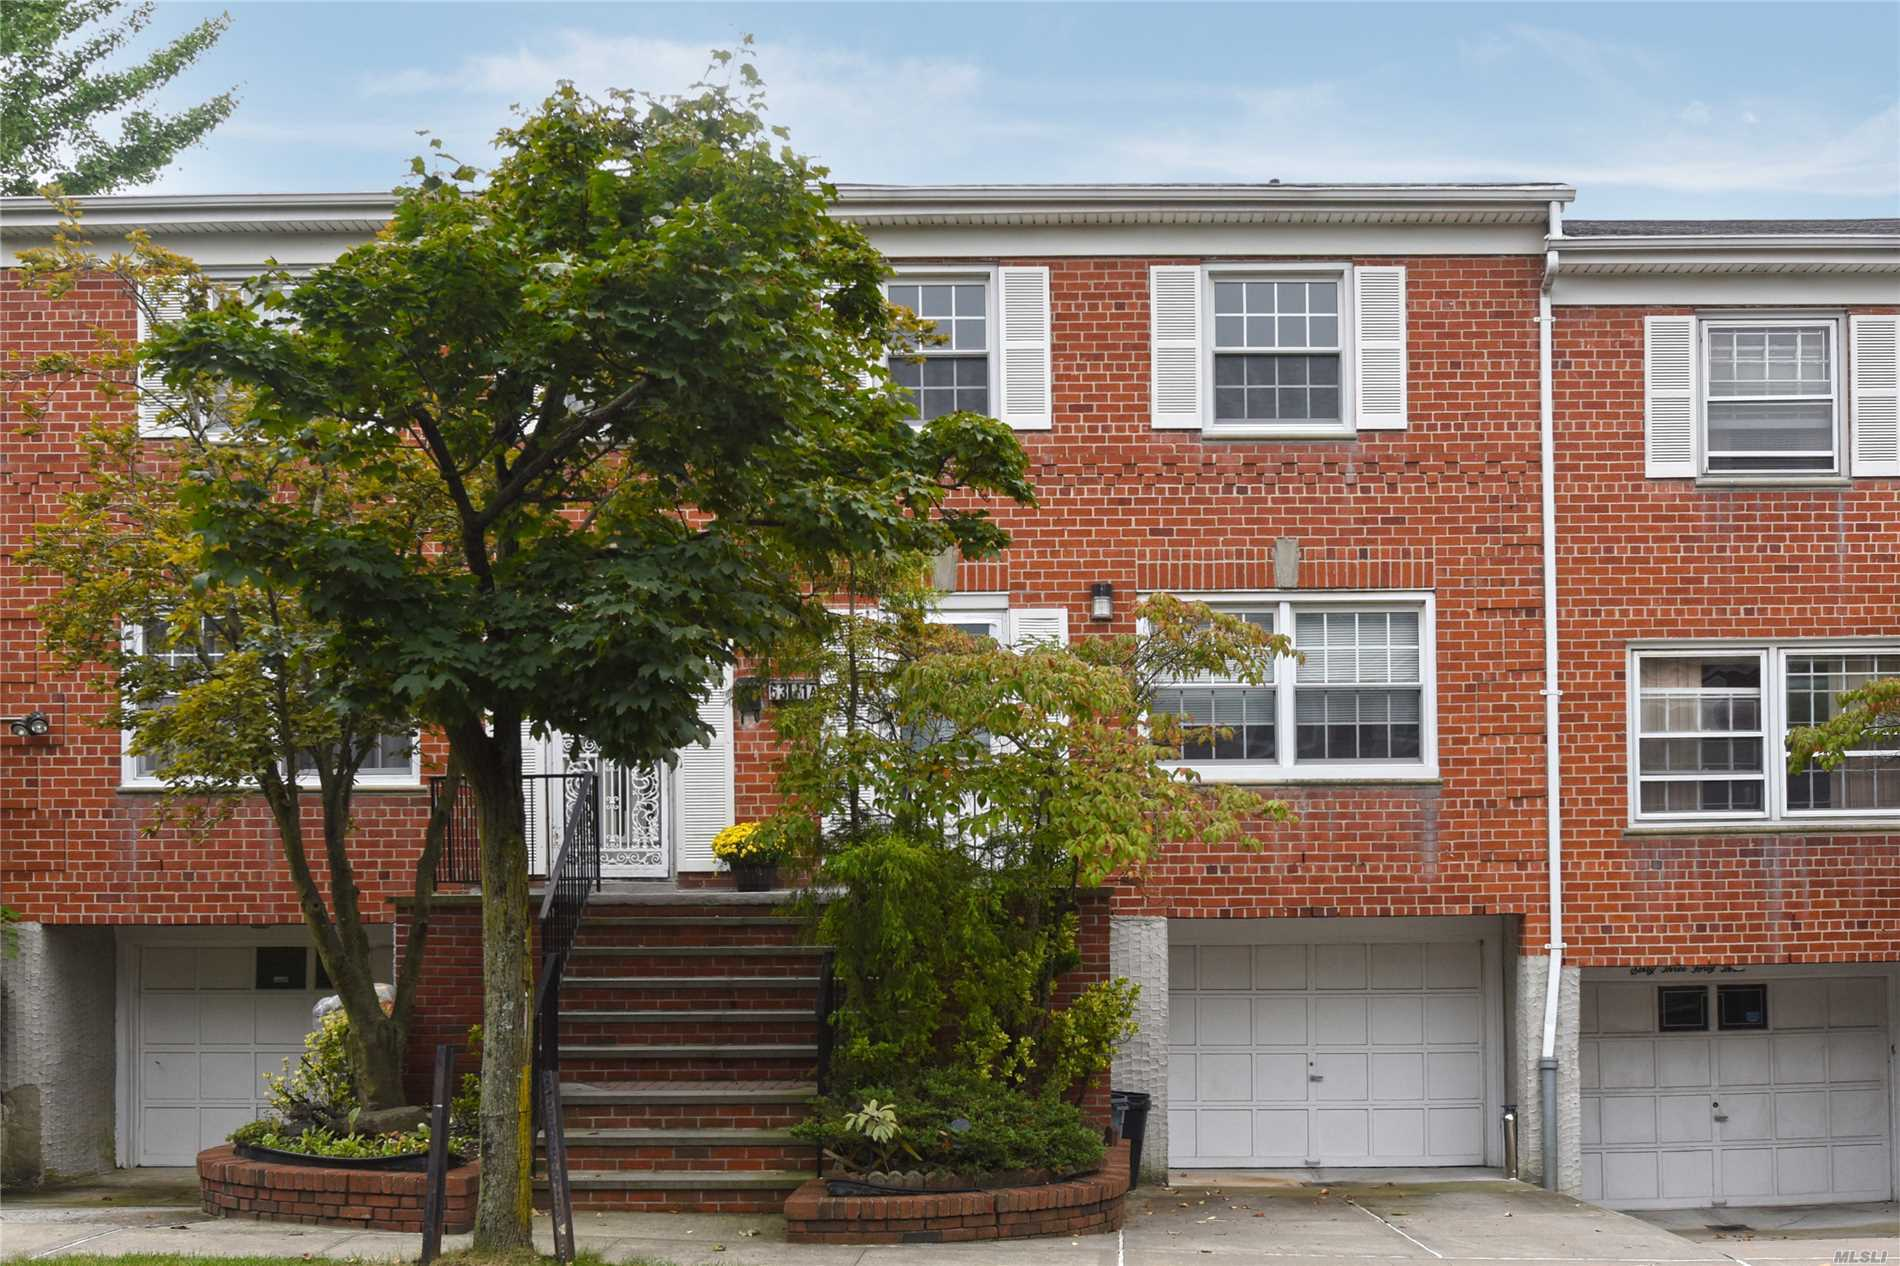 Just Arrived-Affordable Three Bedroom Townhouse Condo In Douglaston. This Spacious Condo Is Located On A Quite Cul De Sac Road With Close Proximity To Shopping, Transportation- Easy Access To Major Highways. New Roof, Stoops- Communiity Pool. Won't Last!